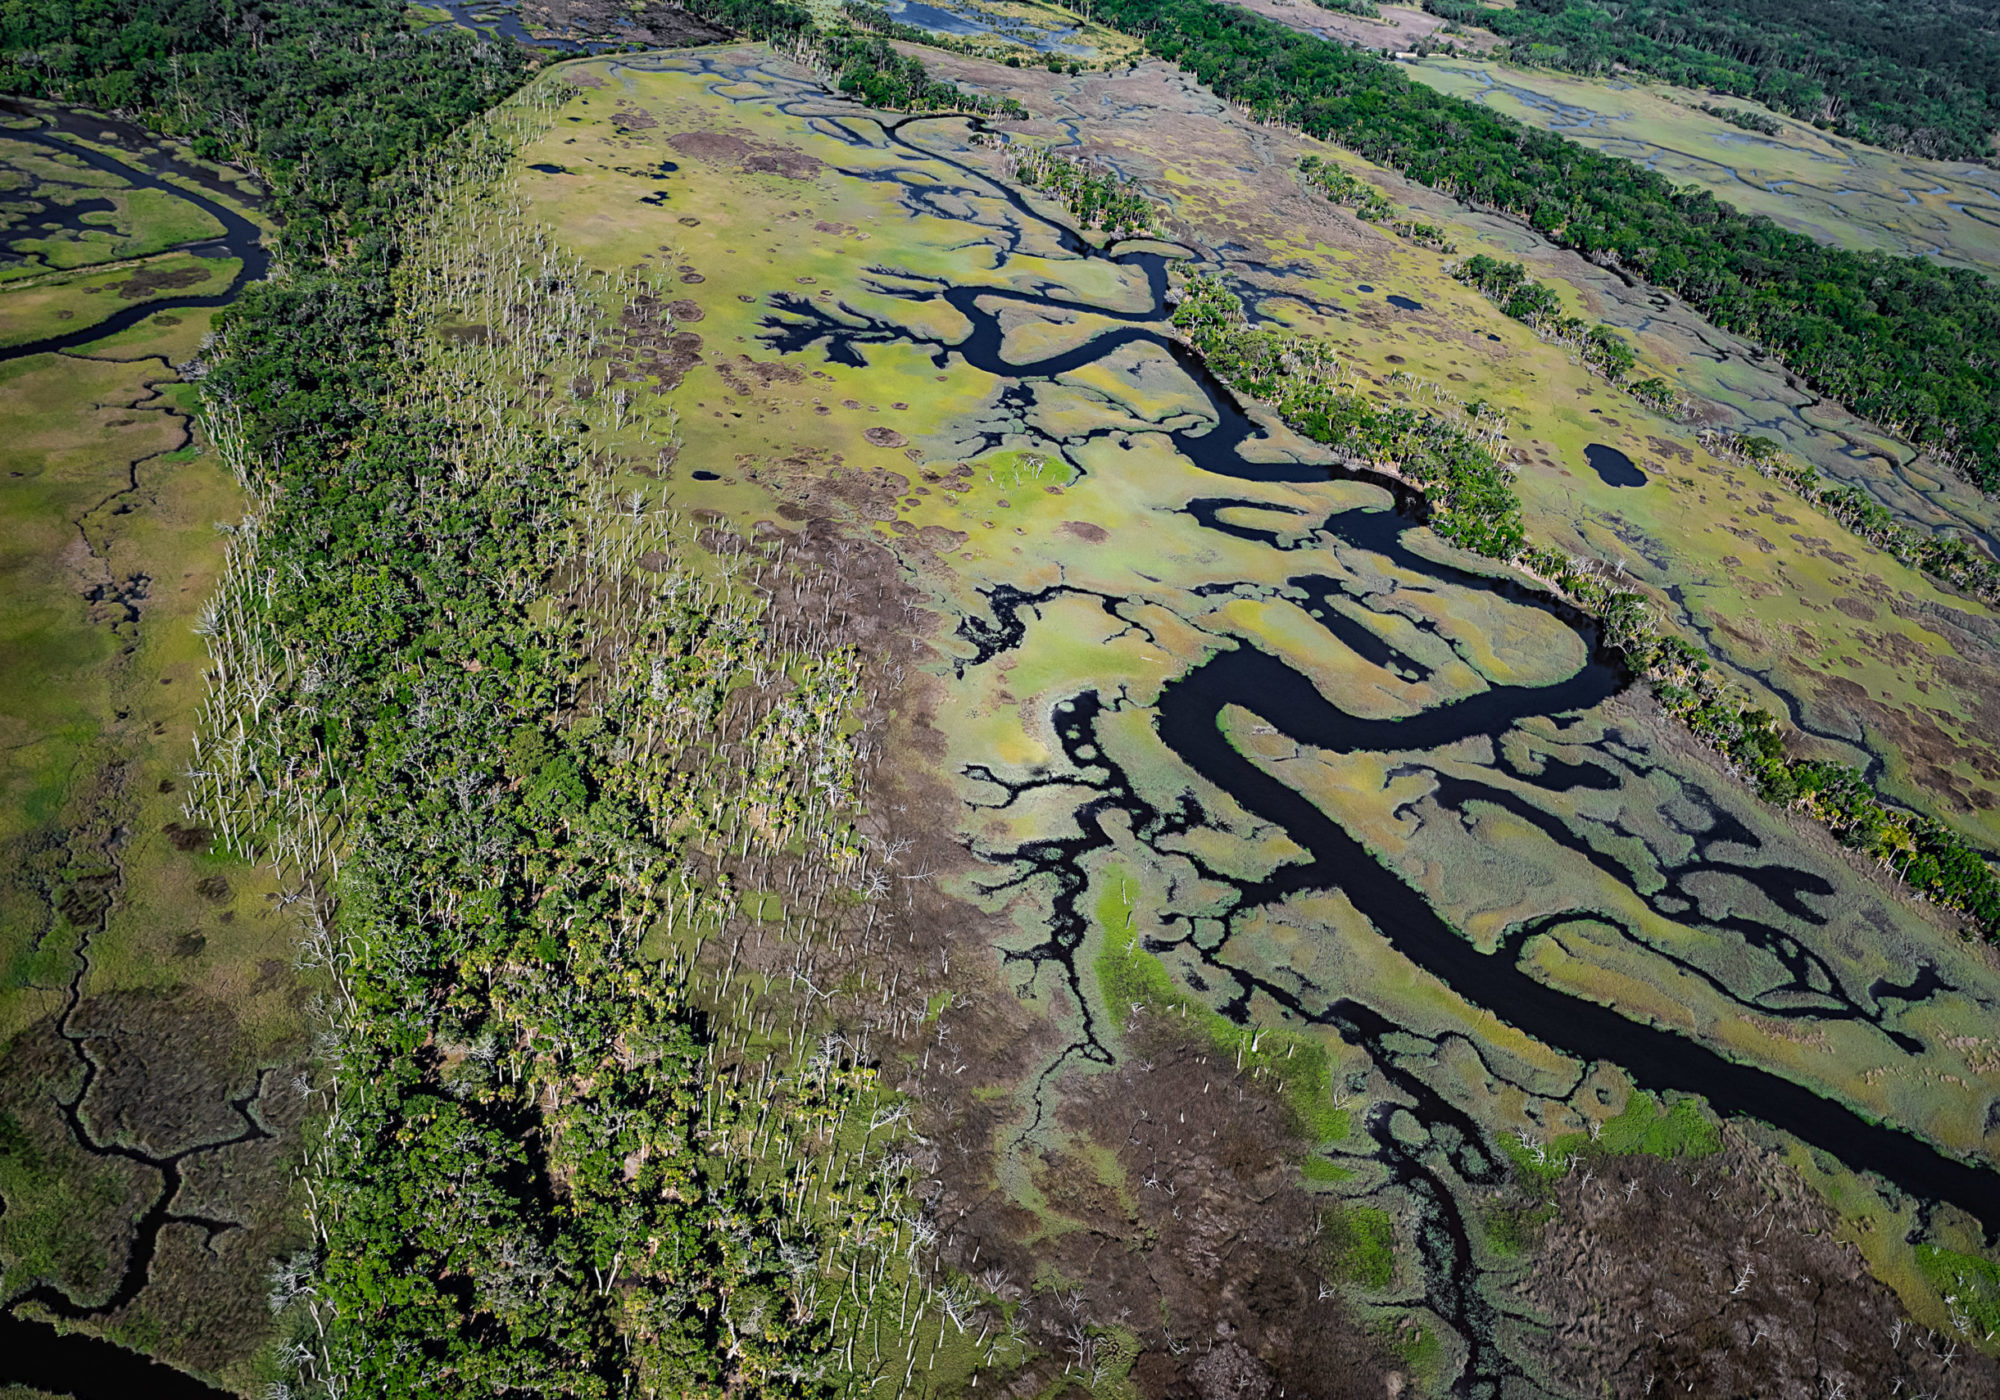 Ossabaw Island is an uninhabited barrier island made up of marshes, creeks and forests. Trees at lower elevations are dying because saltwater is seeping into the soil as sea levels rise. Credit: Teake Zuidema for Nexus Media News